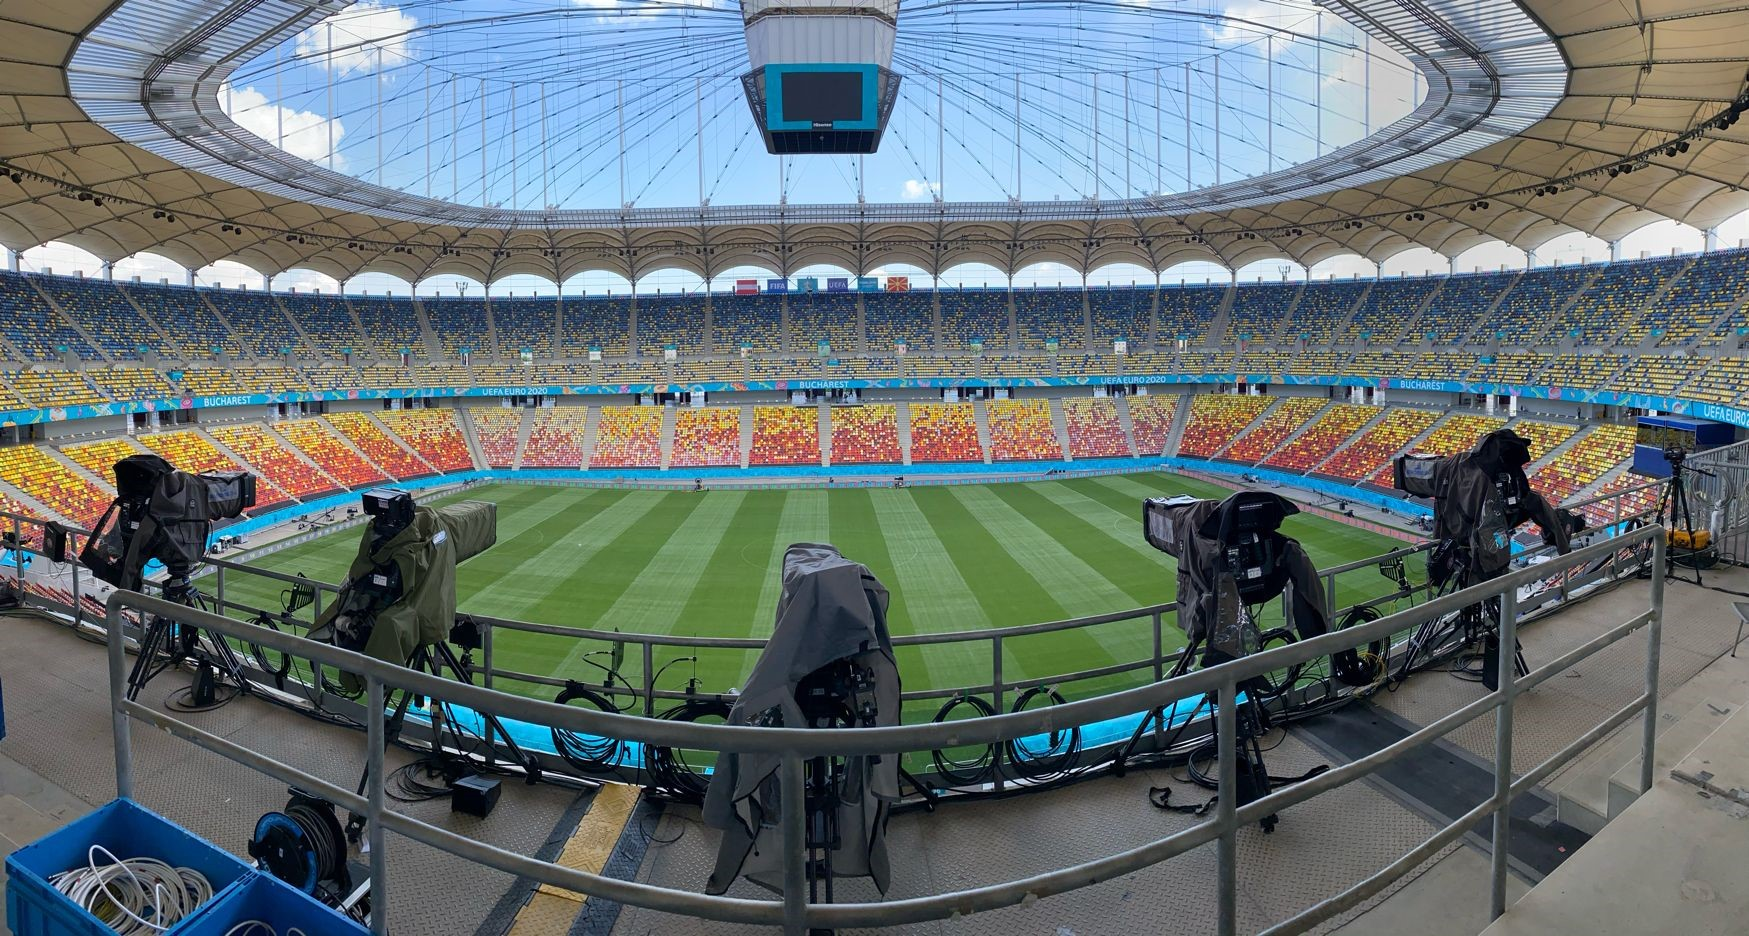 Euro Media Group gantry cameras at the ready for the opening Euro 2020 game in Bucharest